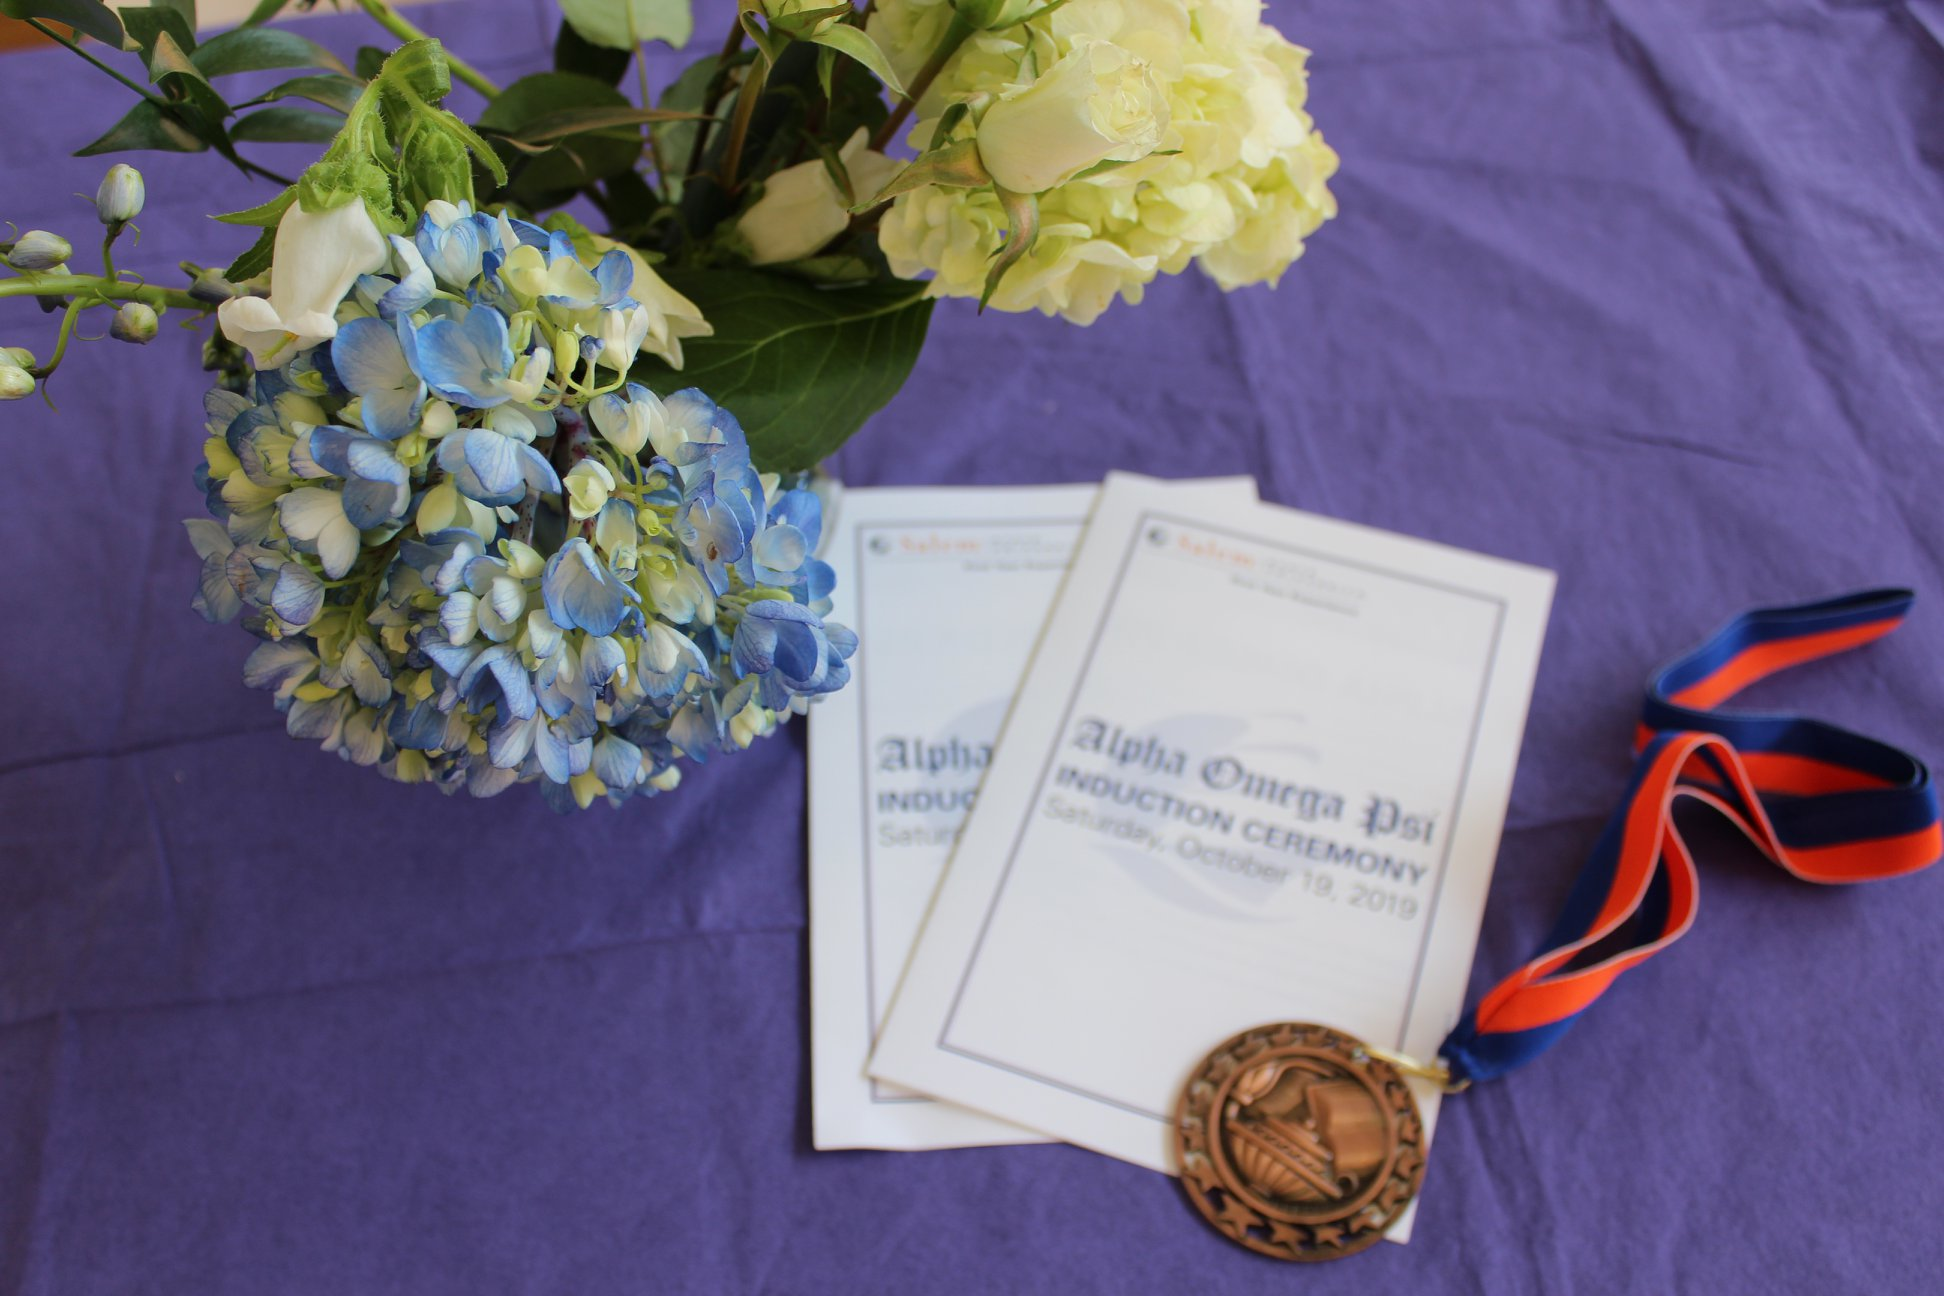 Image of flowers, induction brochure, and medallion for Alpha Omega Psi